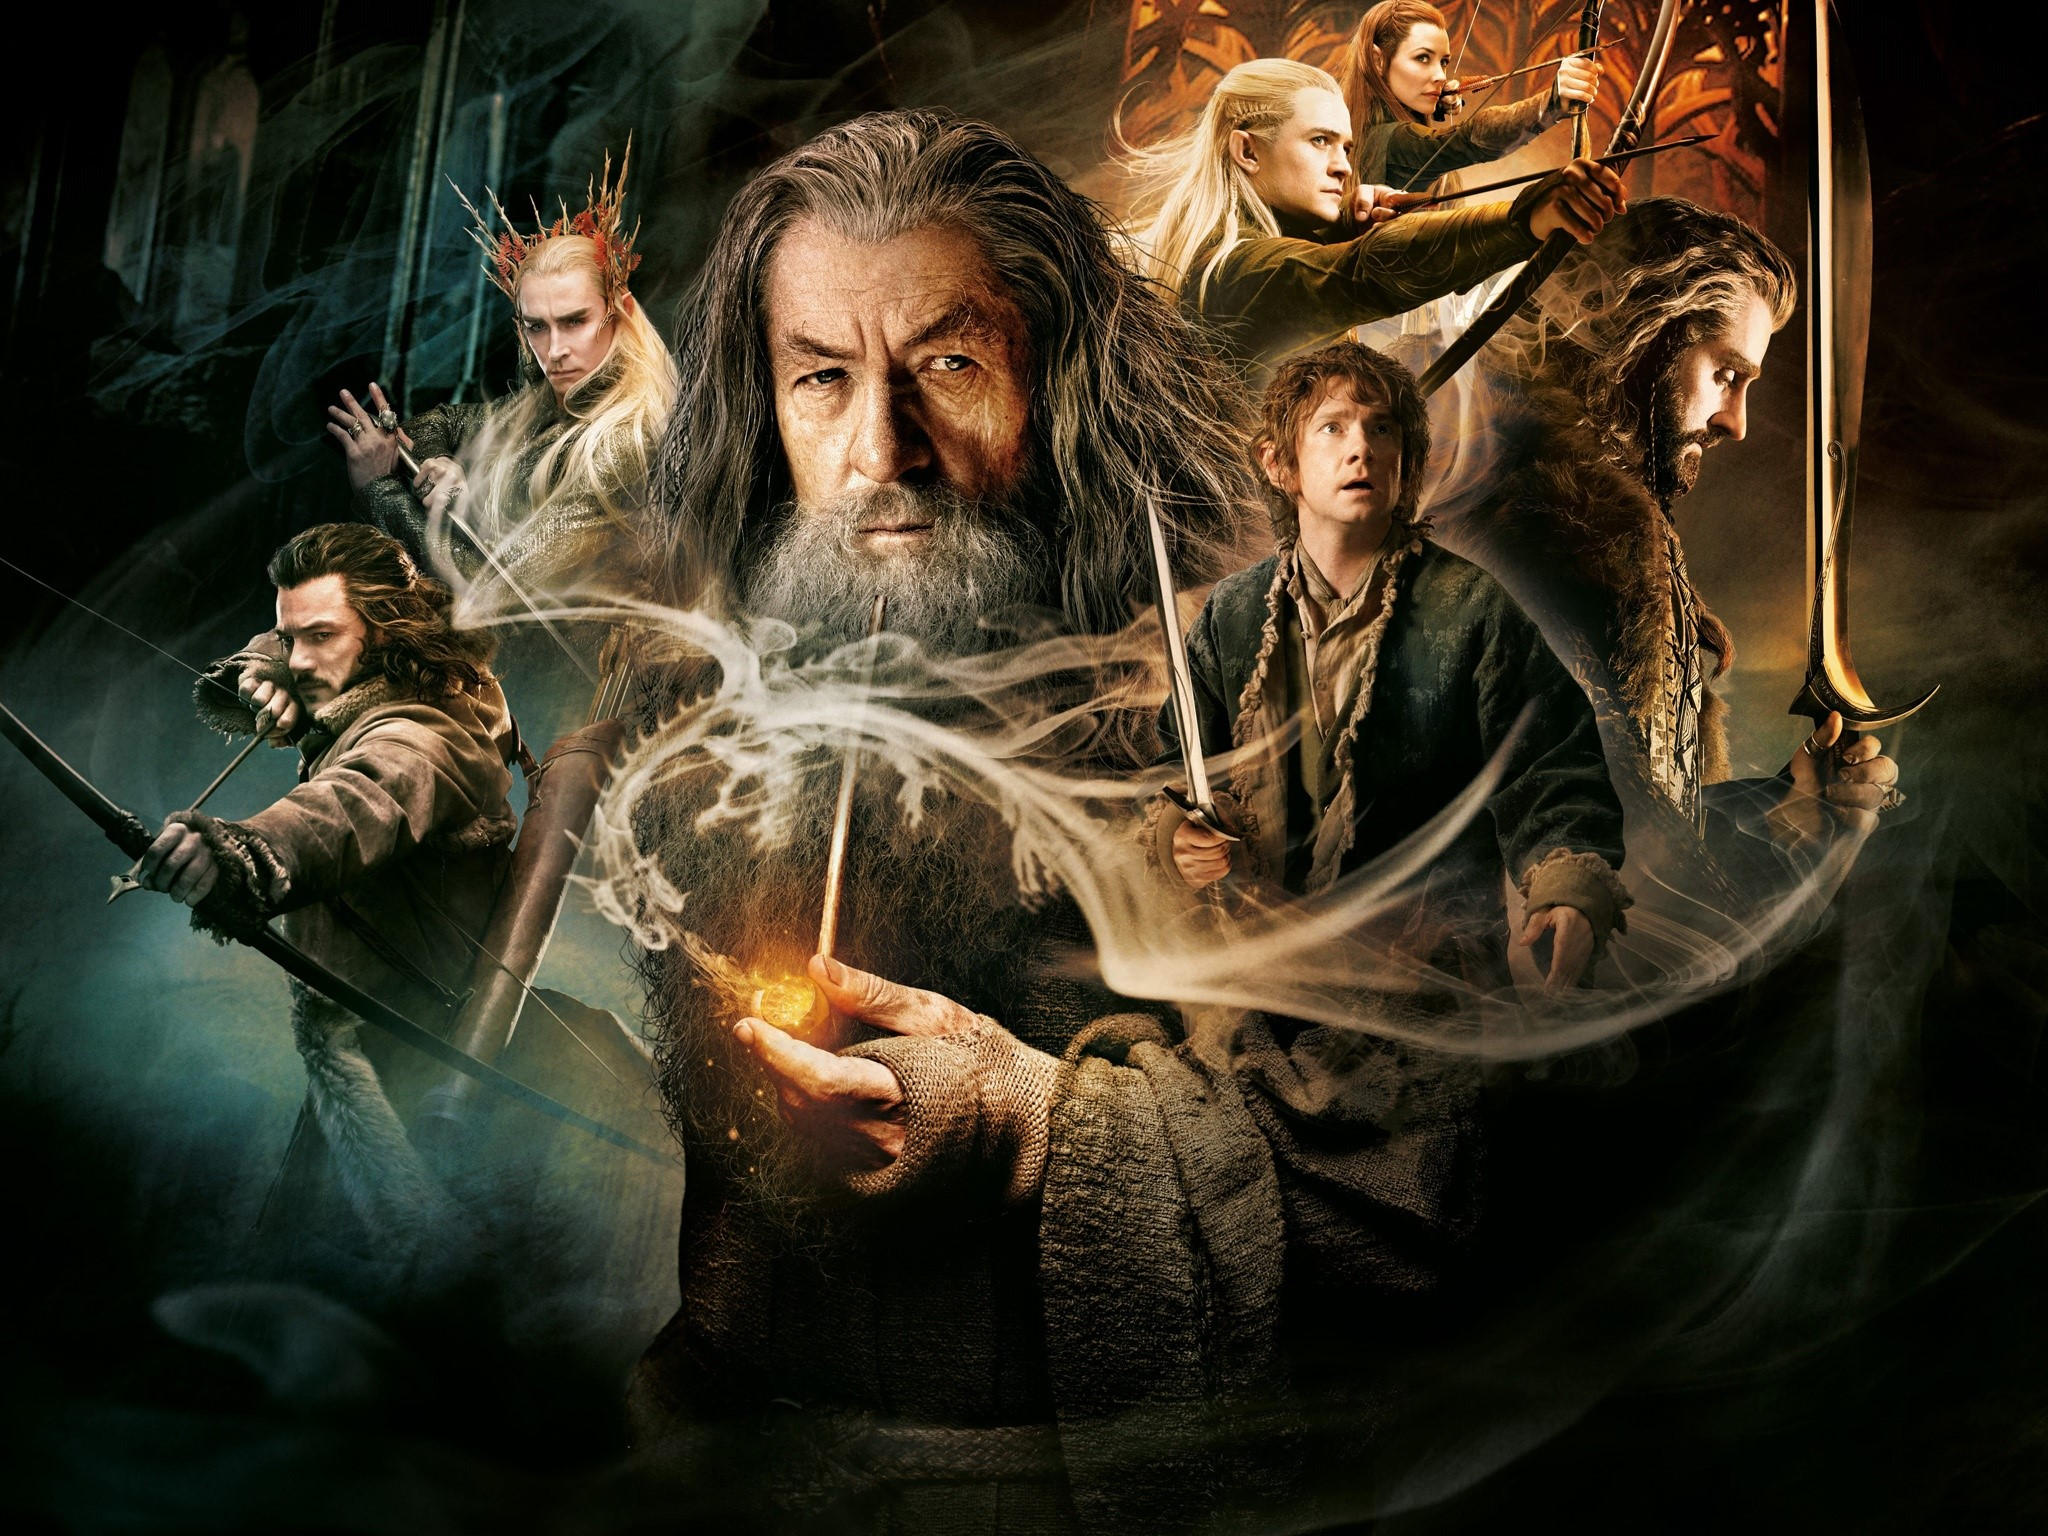 Wallpaper The hobbit 2